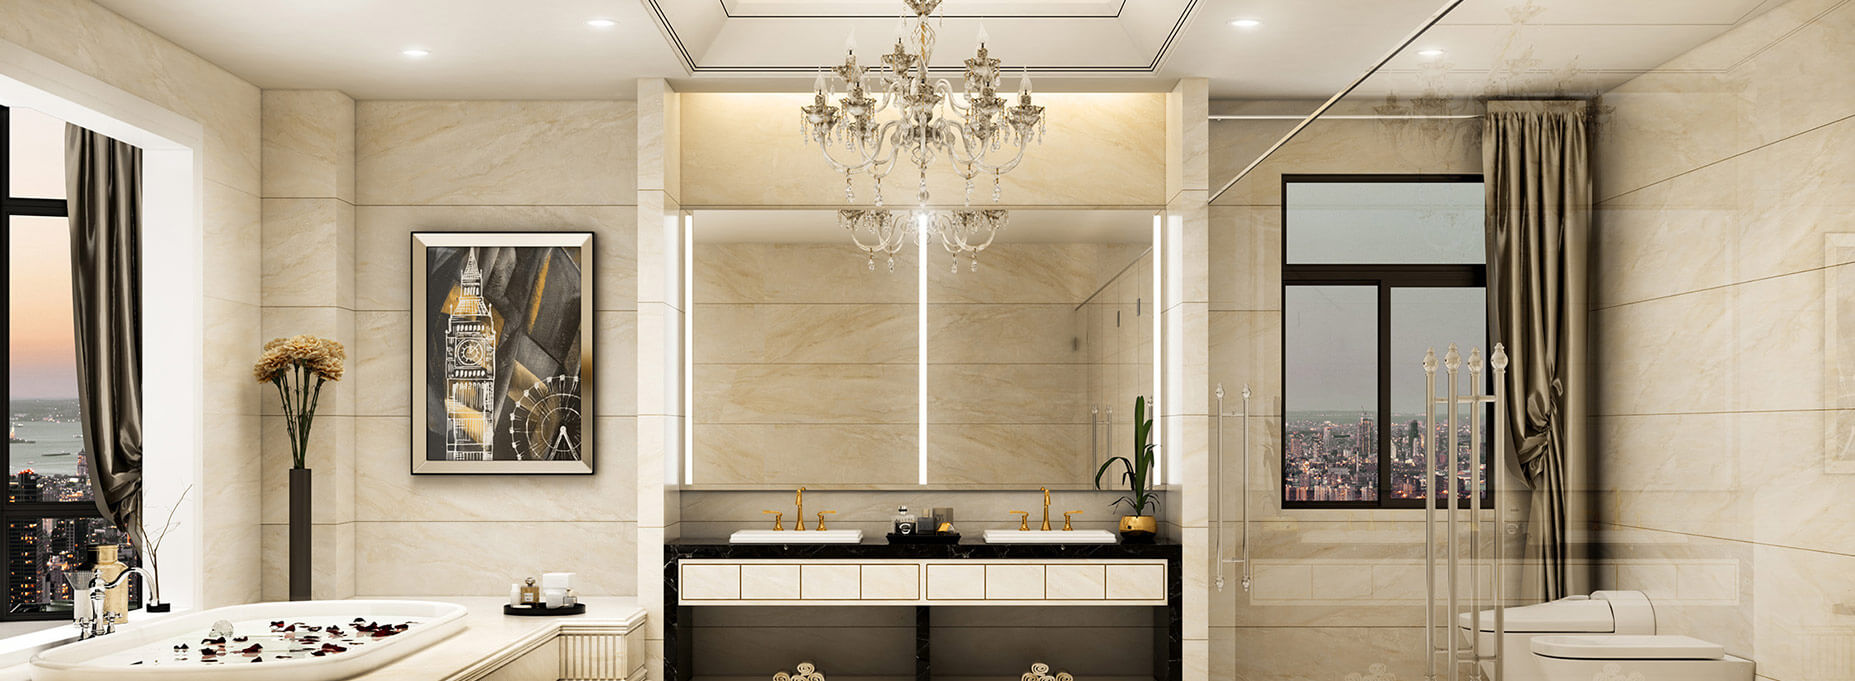 Lighted LED mirrors completely made to size for interior designers.